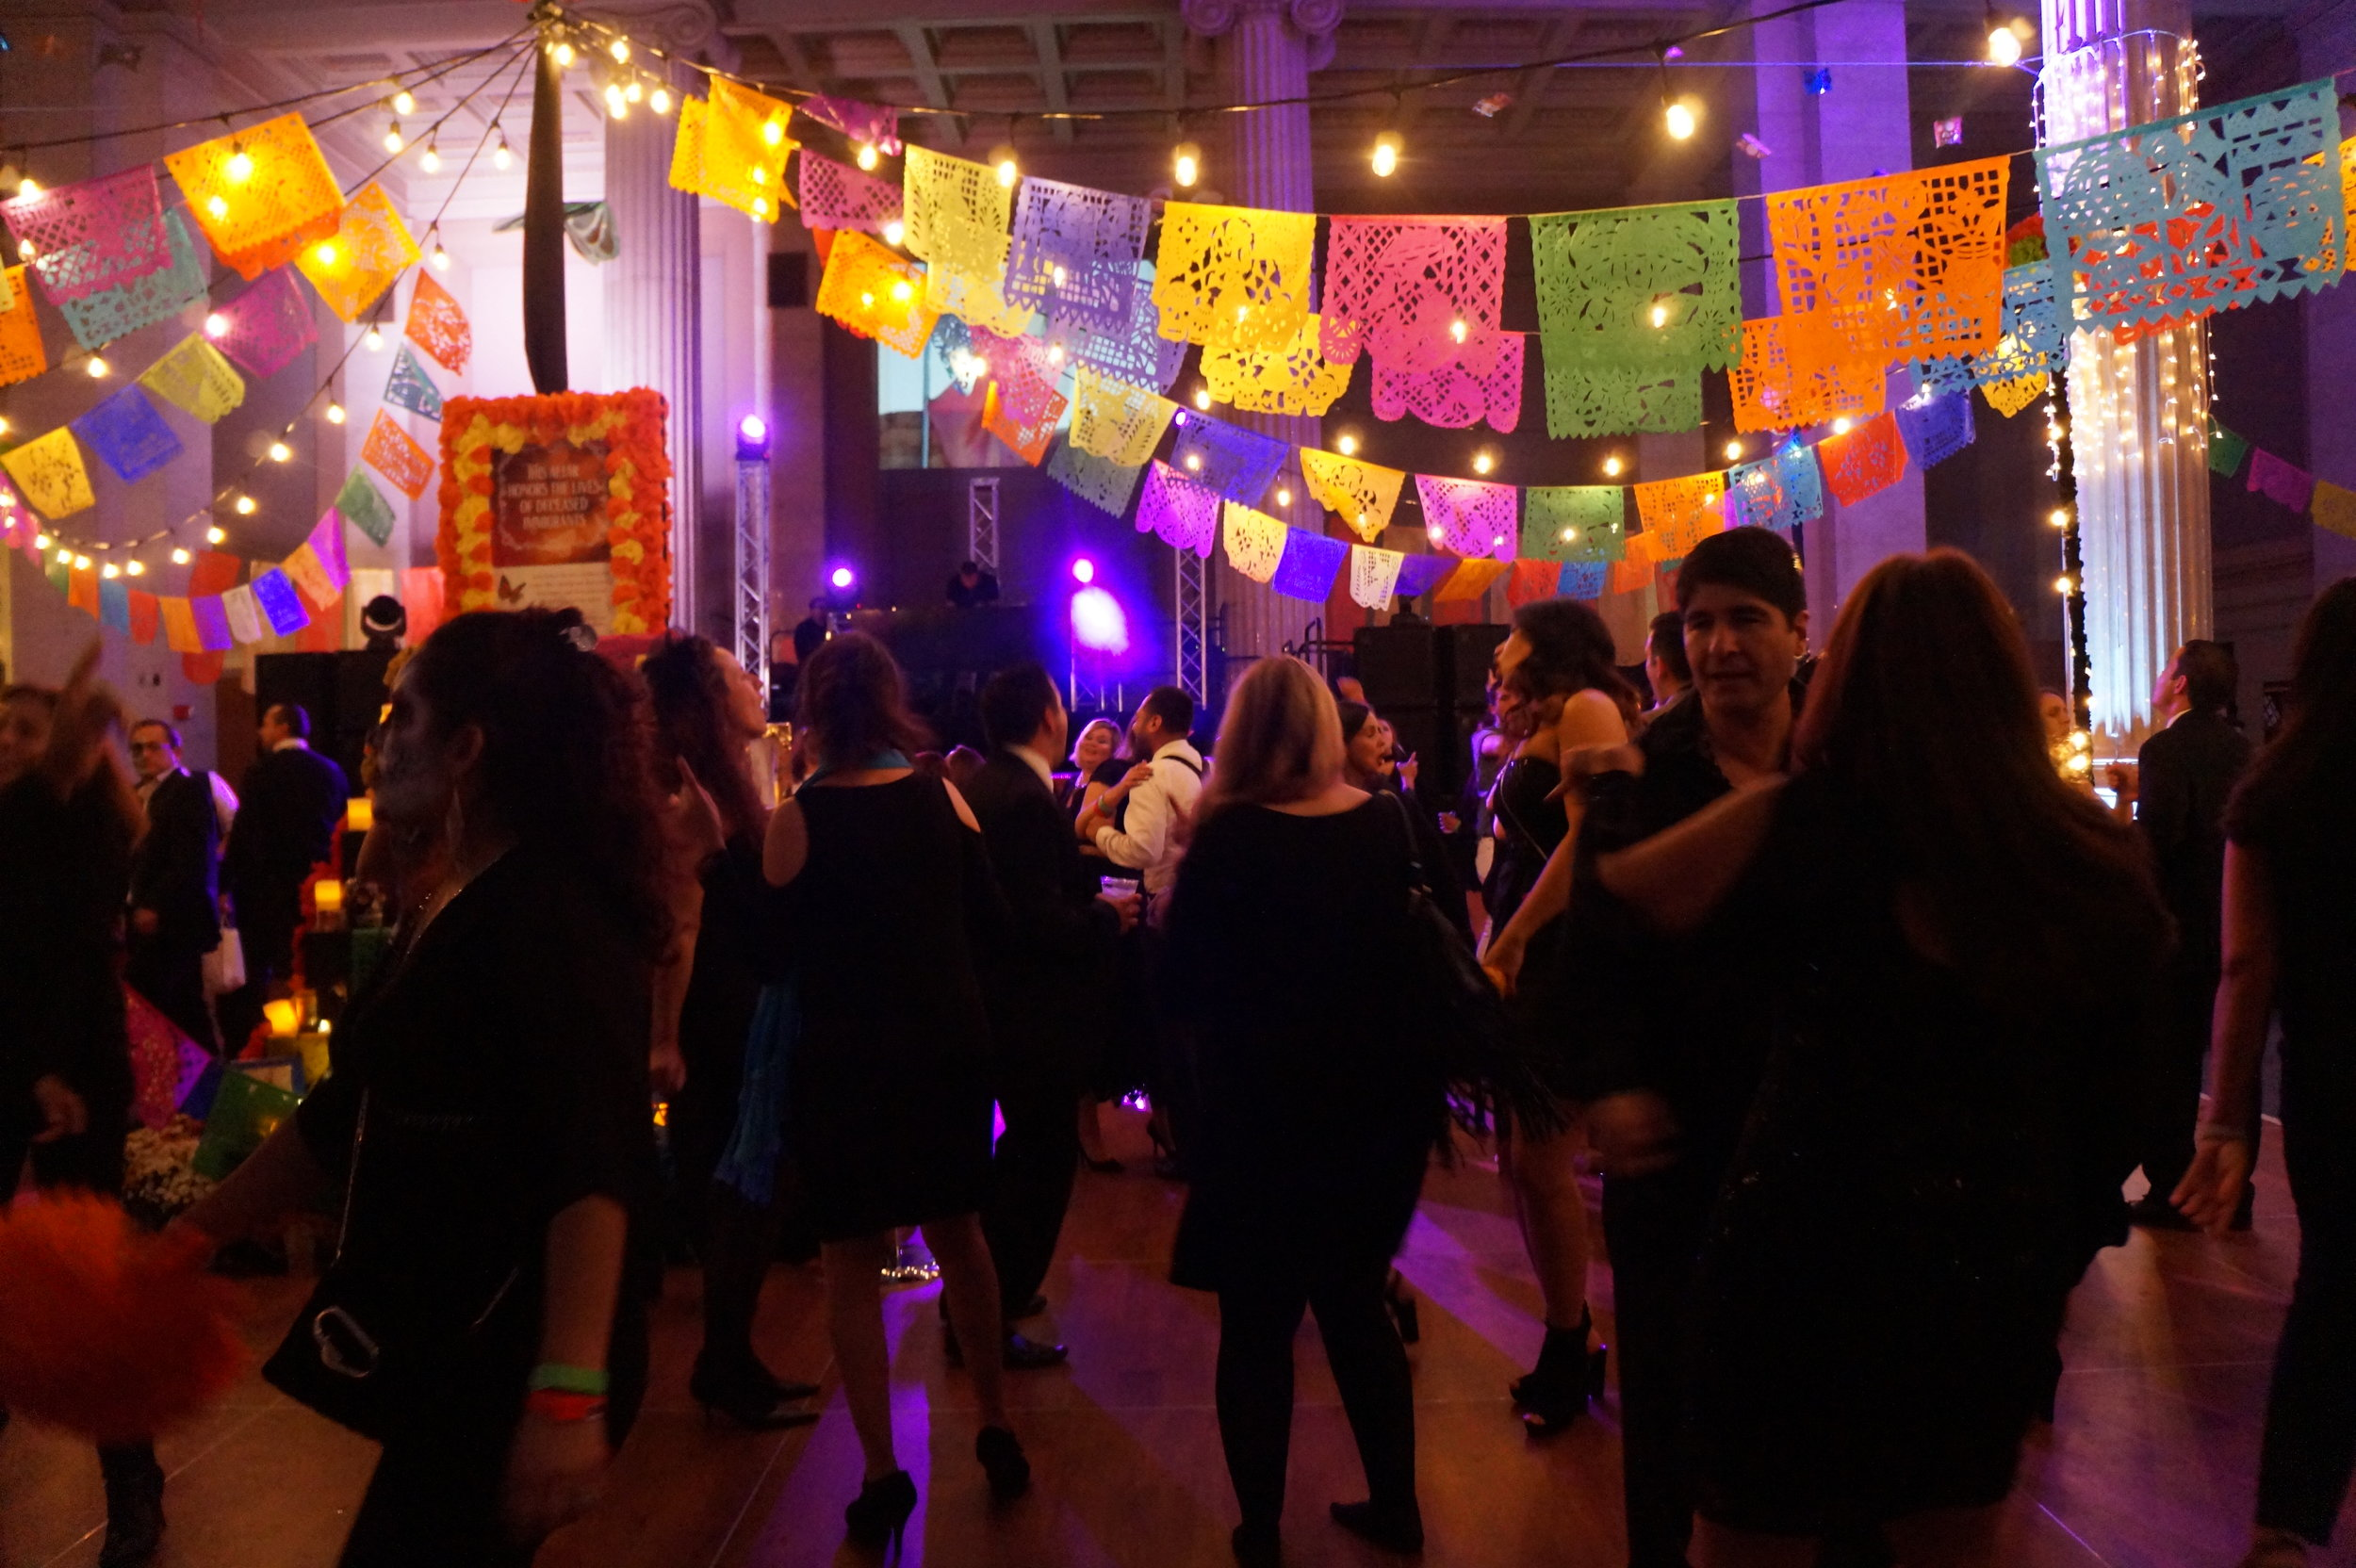 Andrea-Fenise-Latino-Memphis-Day-of-the-Dead-2017 (4).JPG